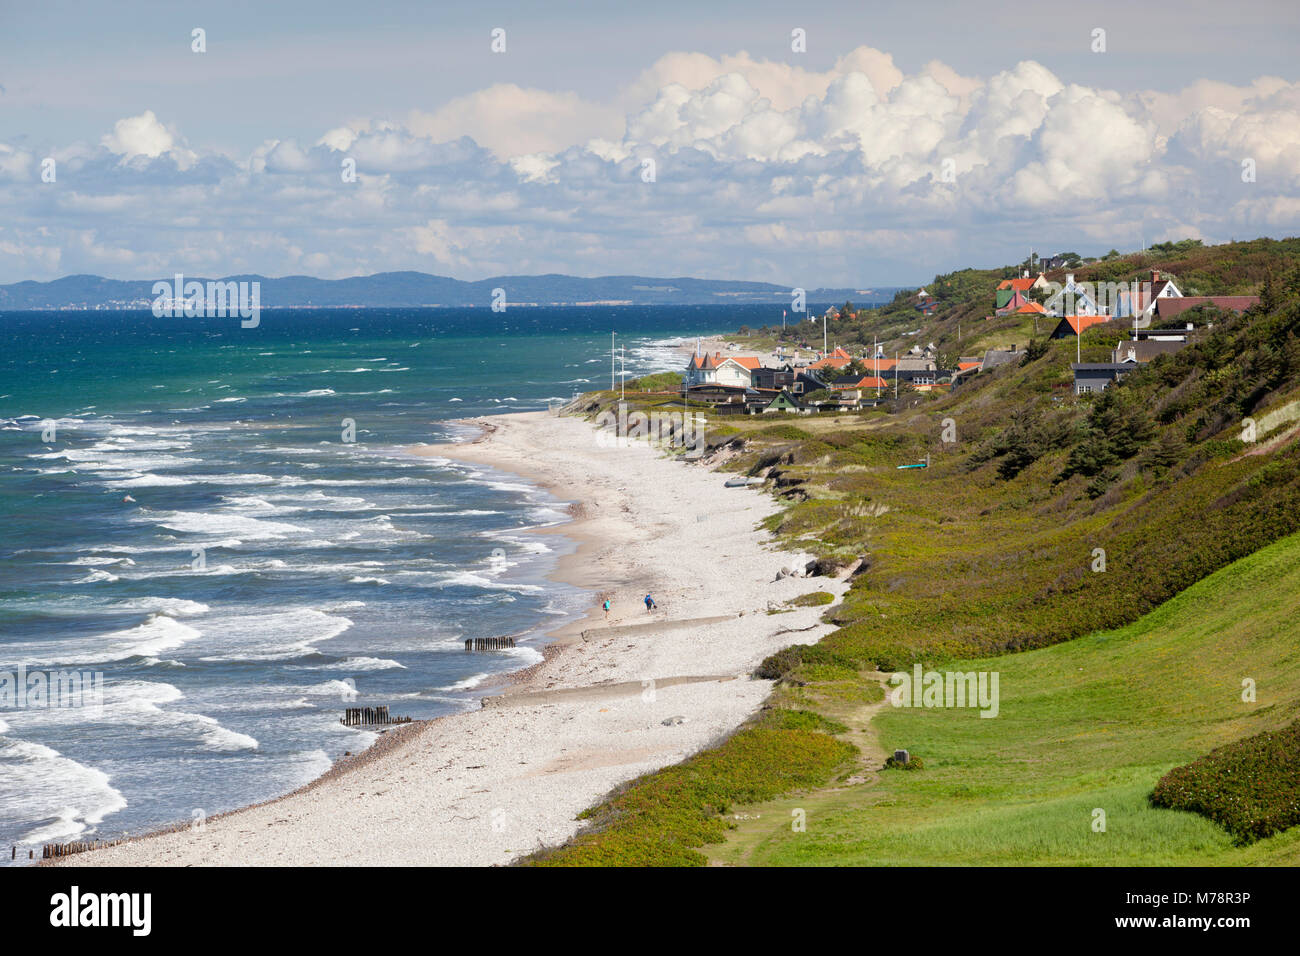 View over Rageleje Strand beach with Swedish coastline in distance, Rageleje, Kattegat Coast, Zealand, Denmark, Stock Photo